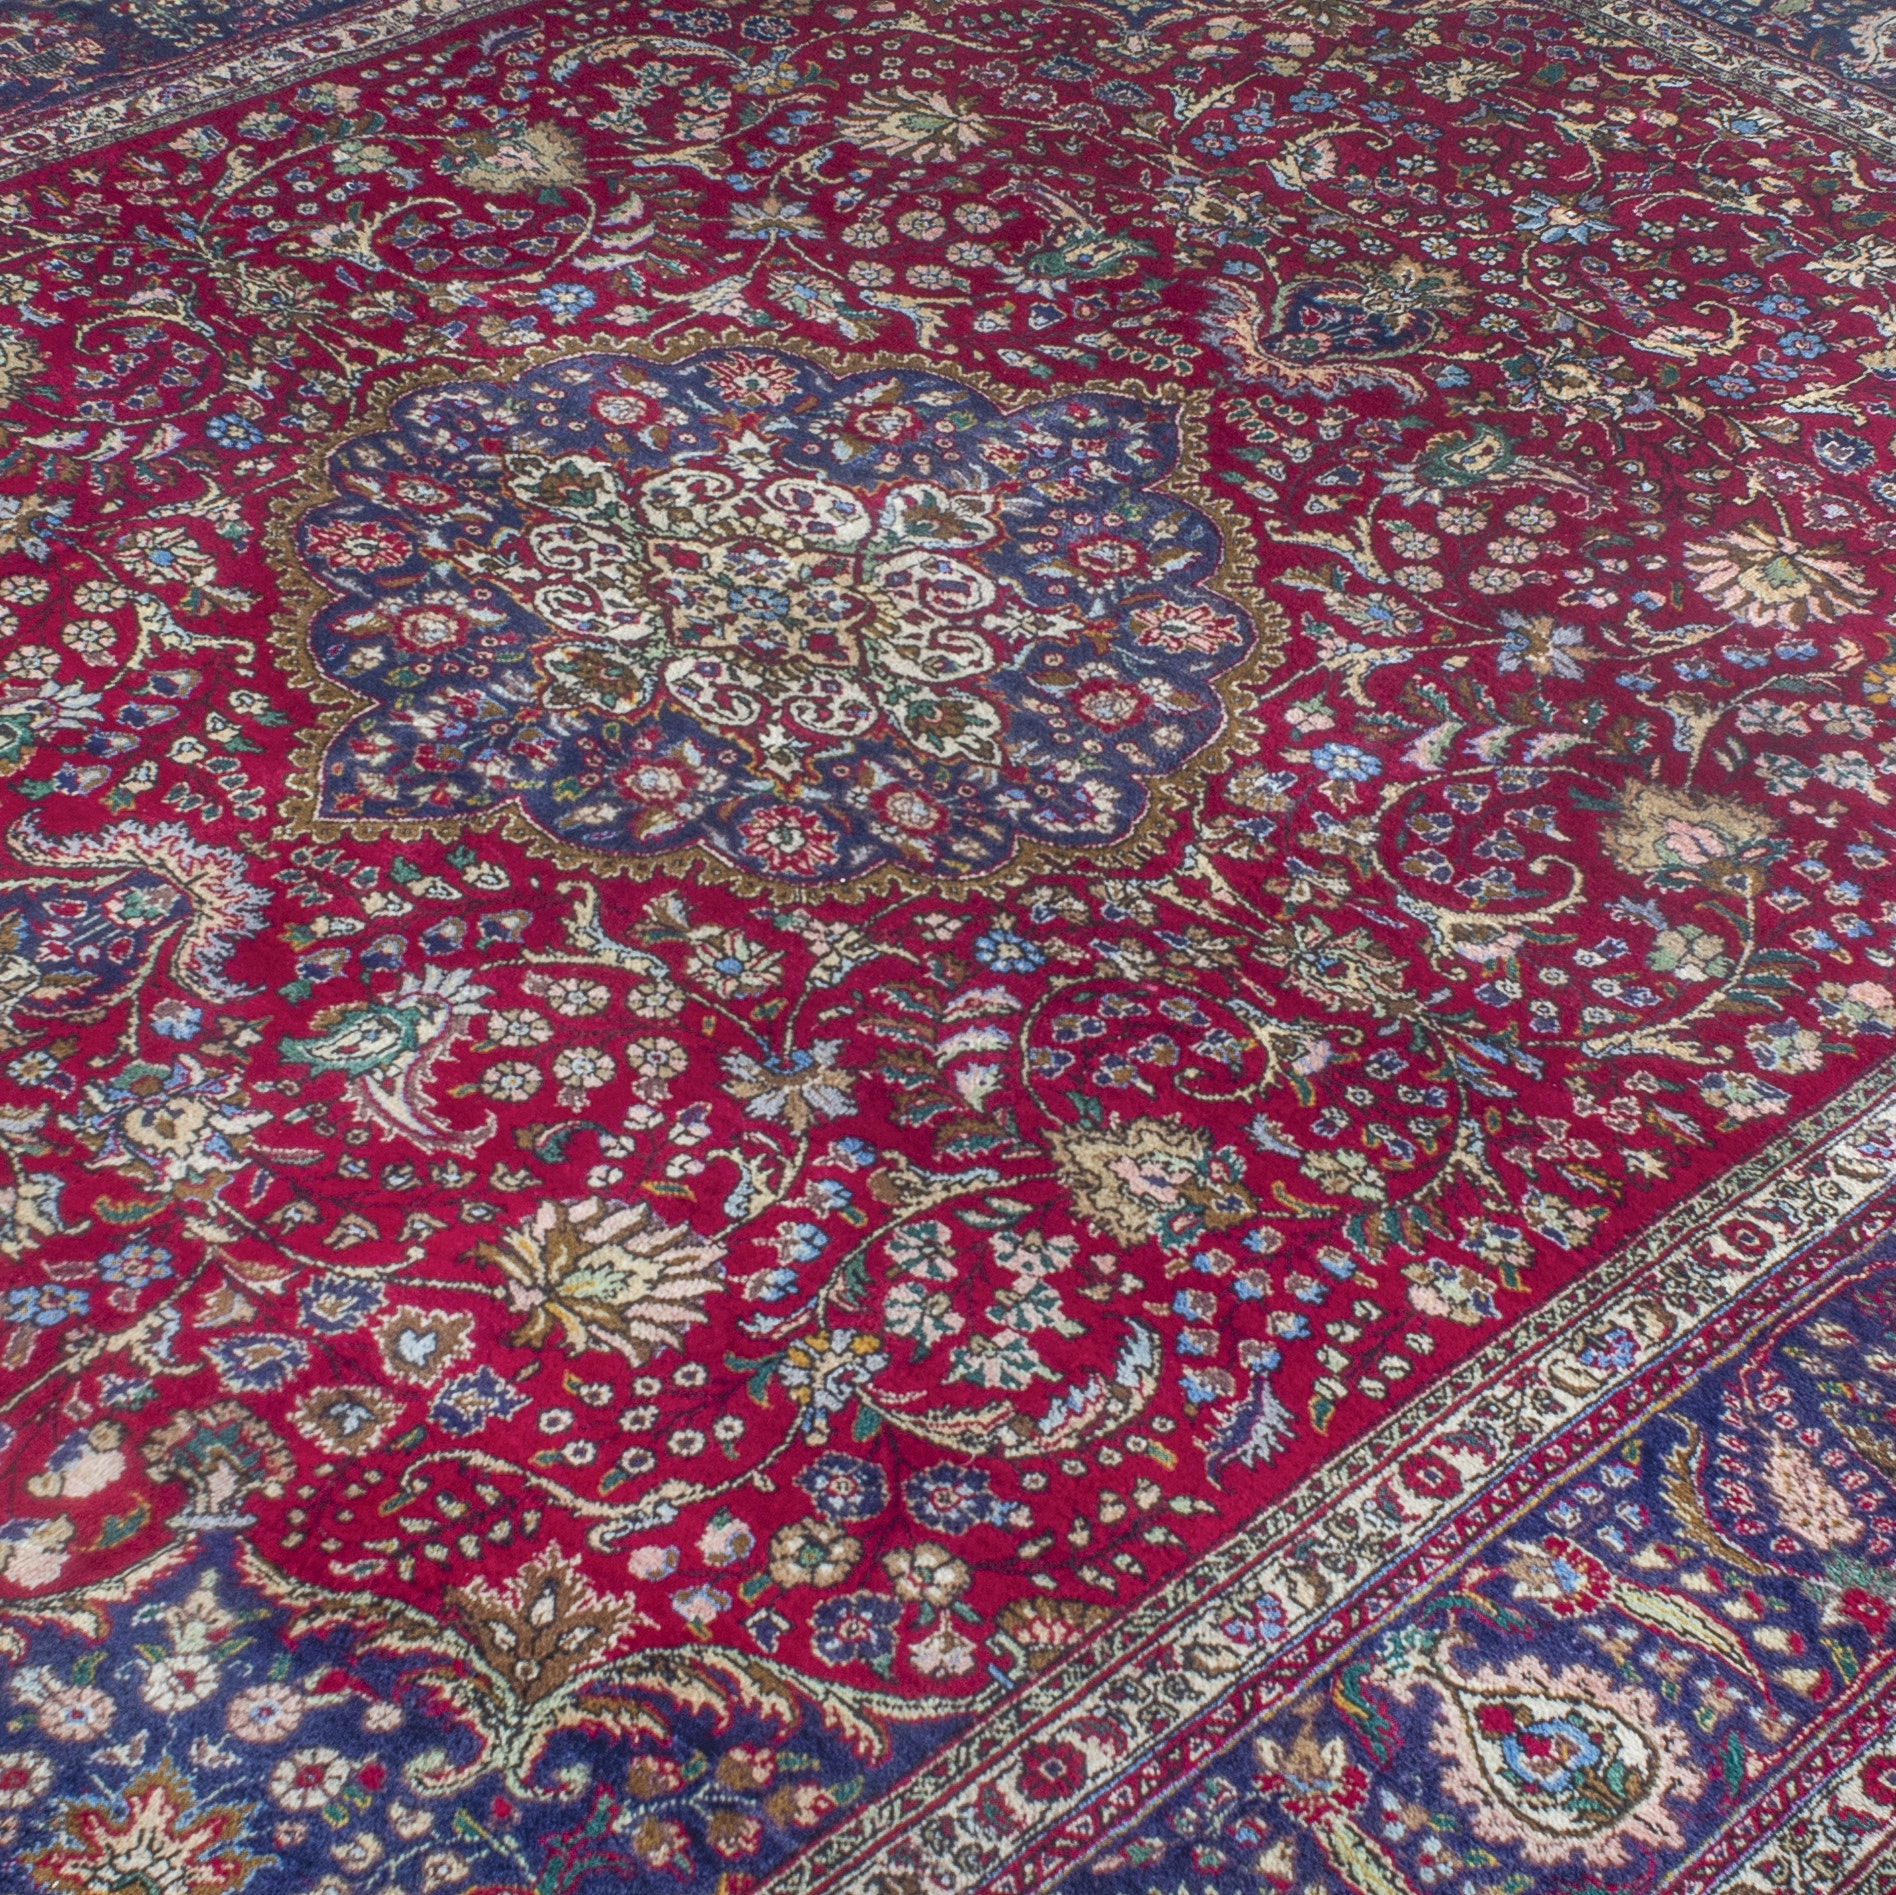 Vintage Hand-Knotted Persian Tabriz Wool Room Sized Rug